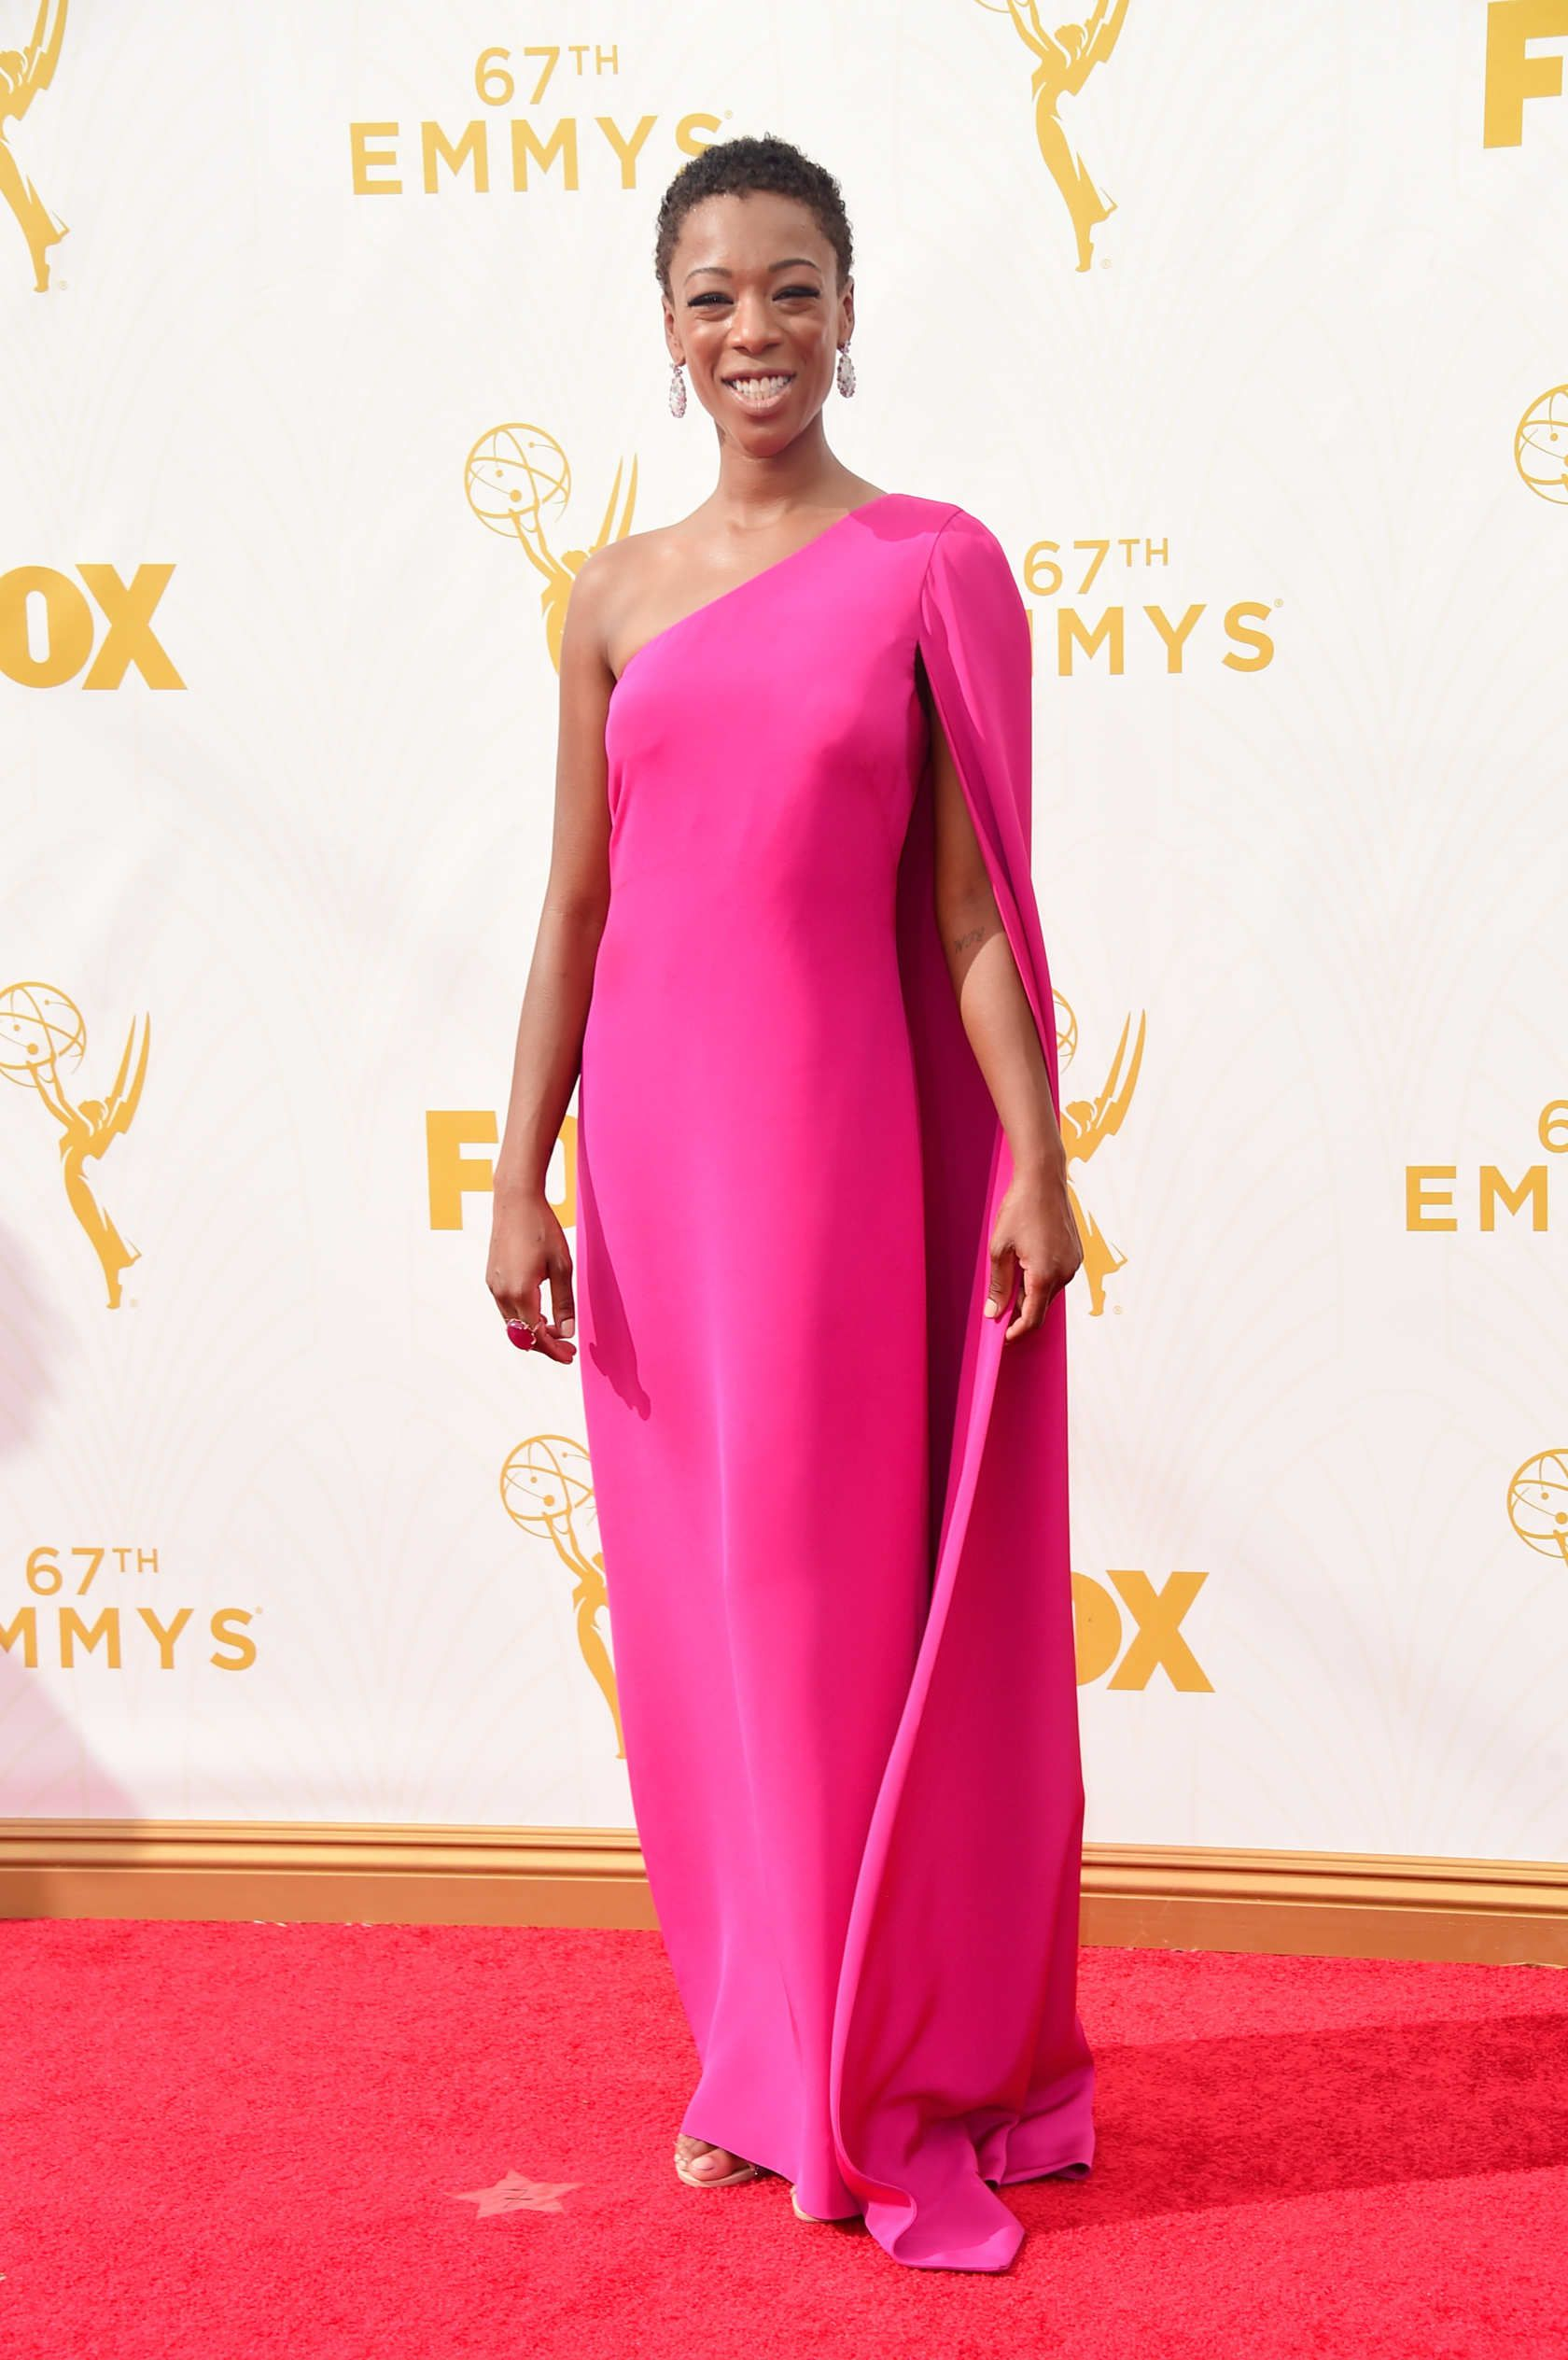 Samira wiley wedding dress  Samira Wiley  Samira wiley Red carpet and Fashion